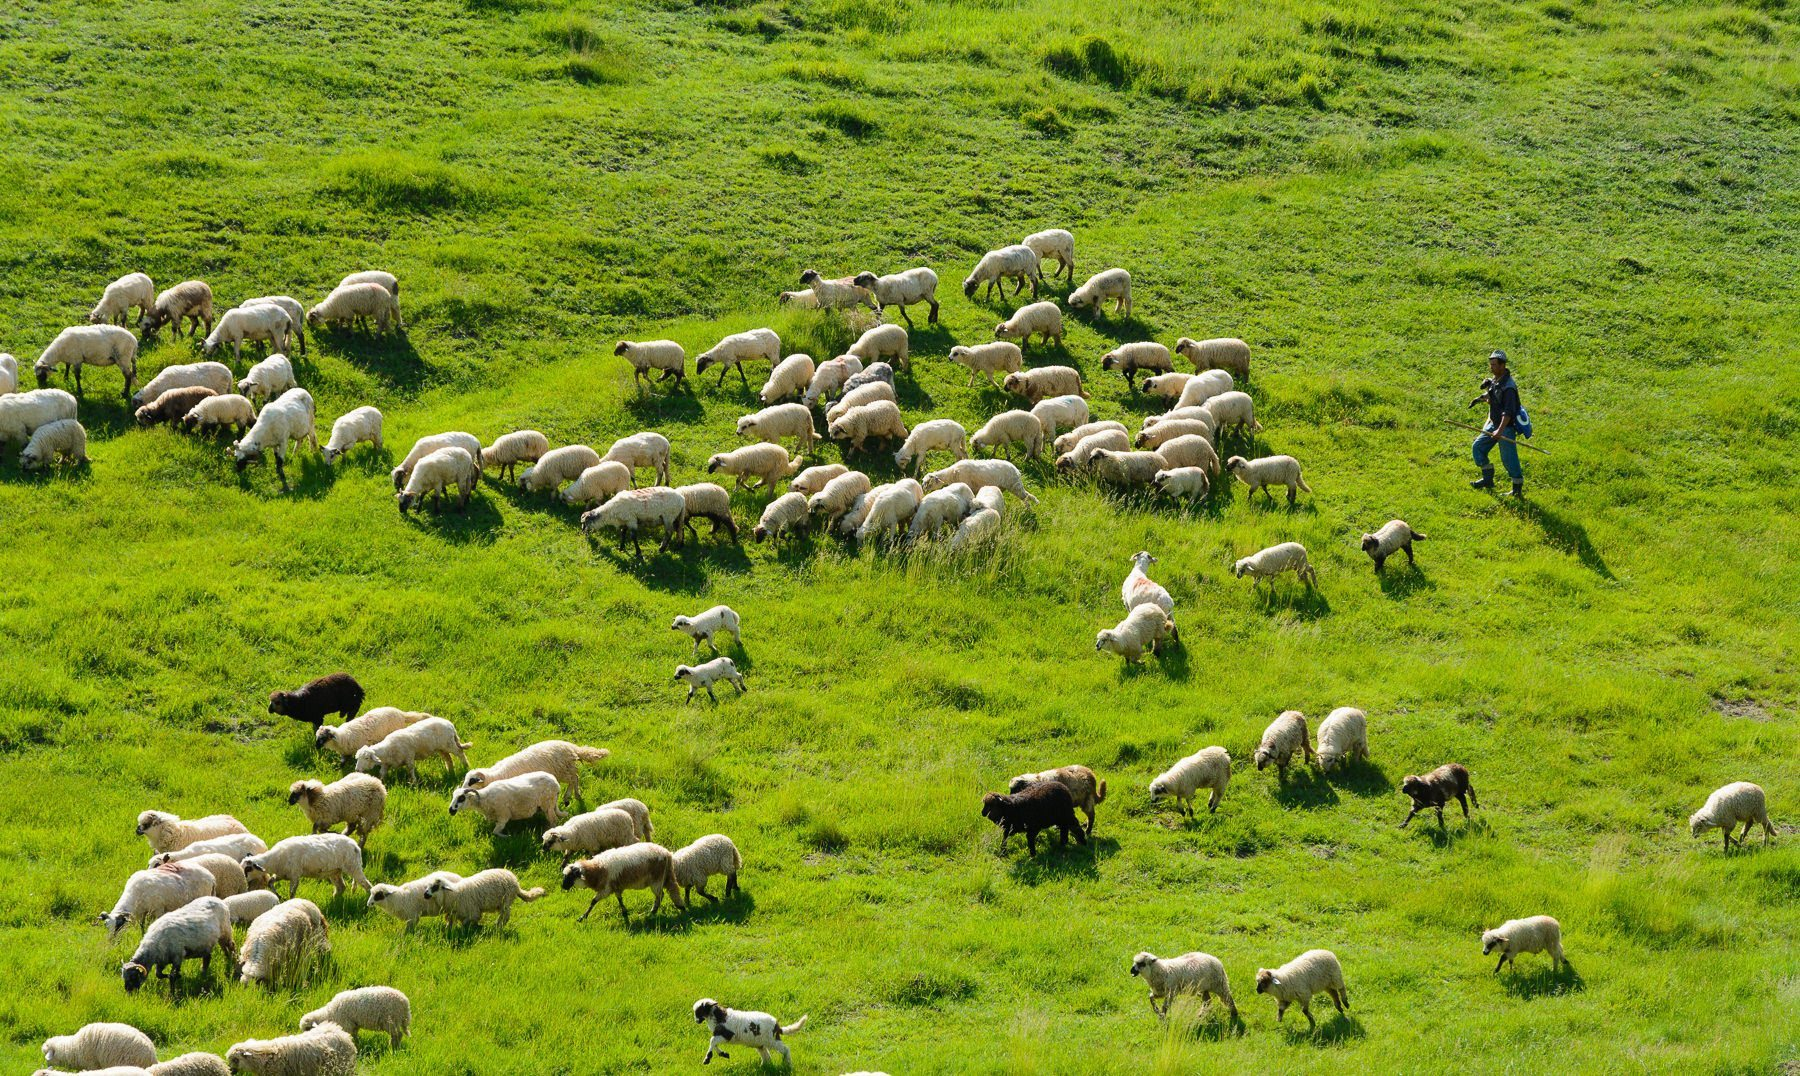 a shepherd leads his flock of sheep across green fields in Northern Romania